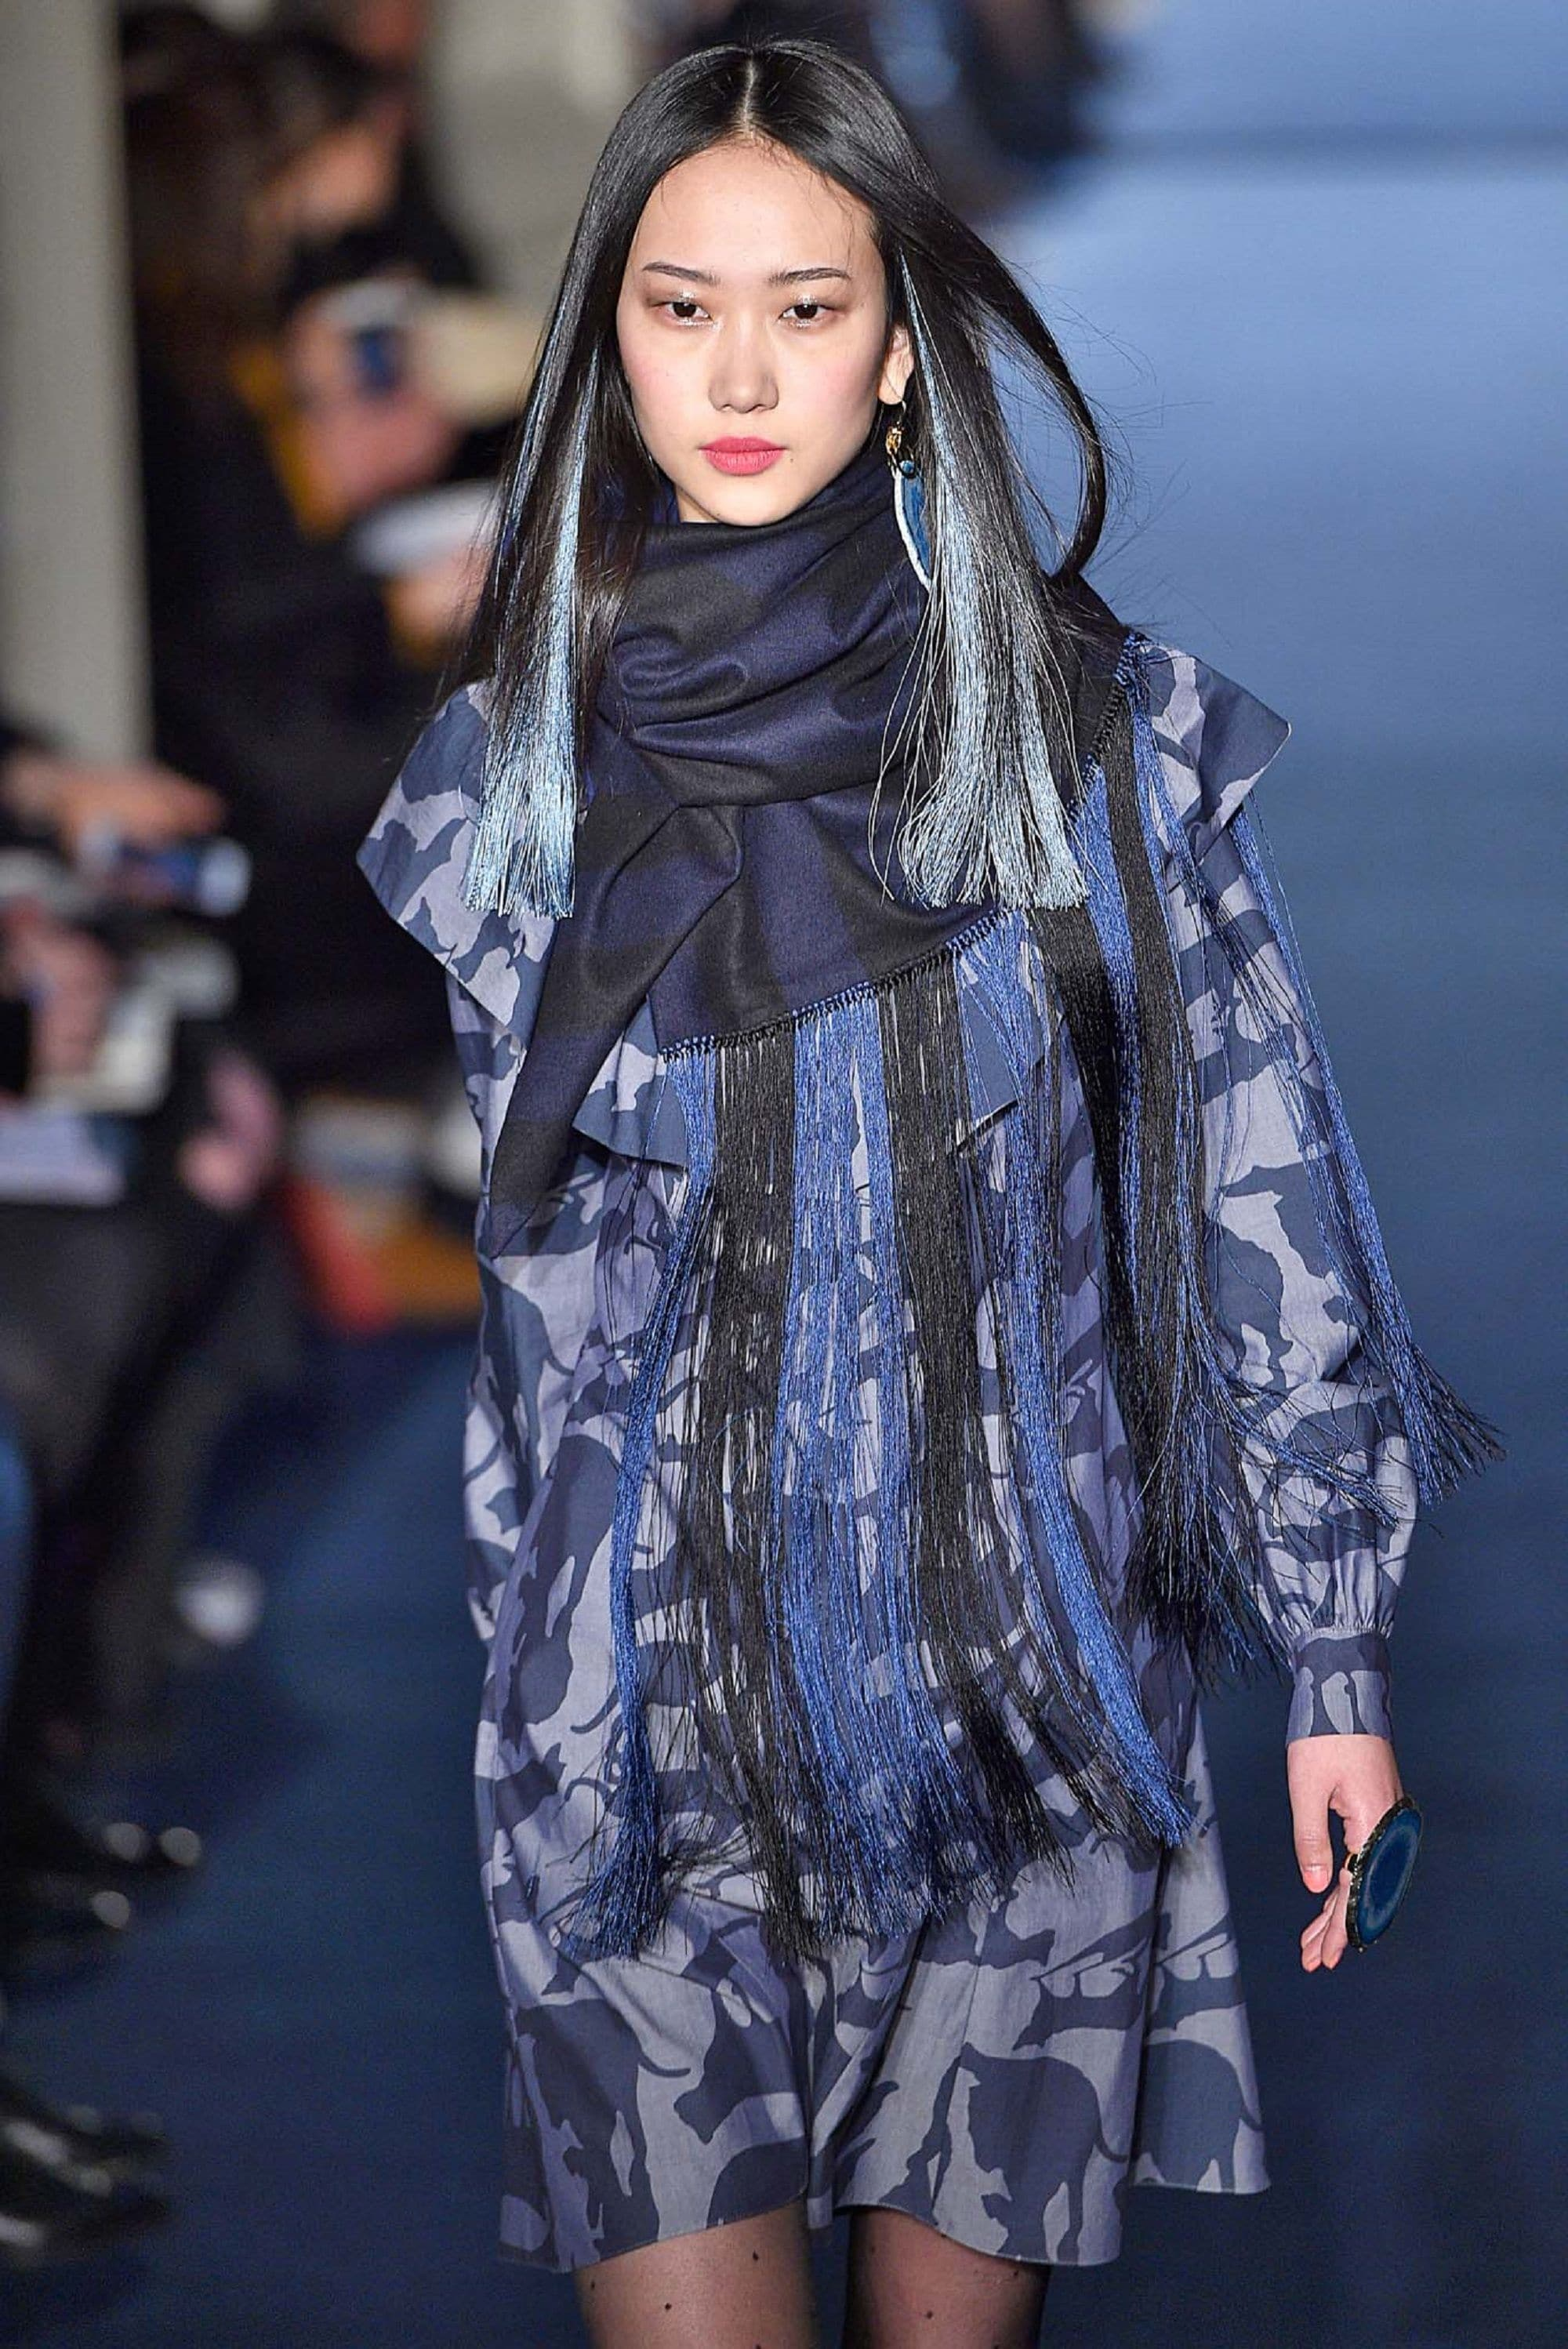 Hair colors for long hair: Asian woman with long black hair and ice blue highlights